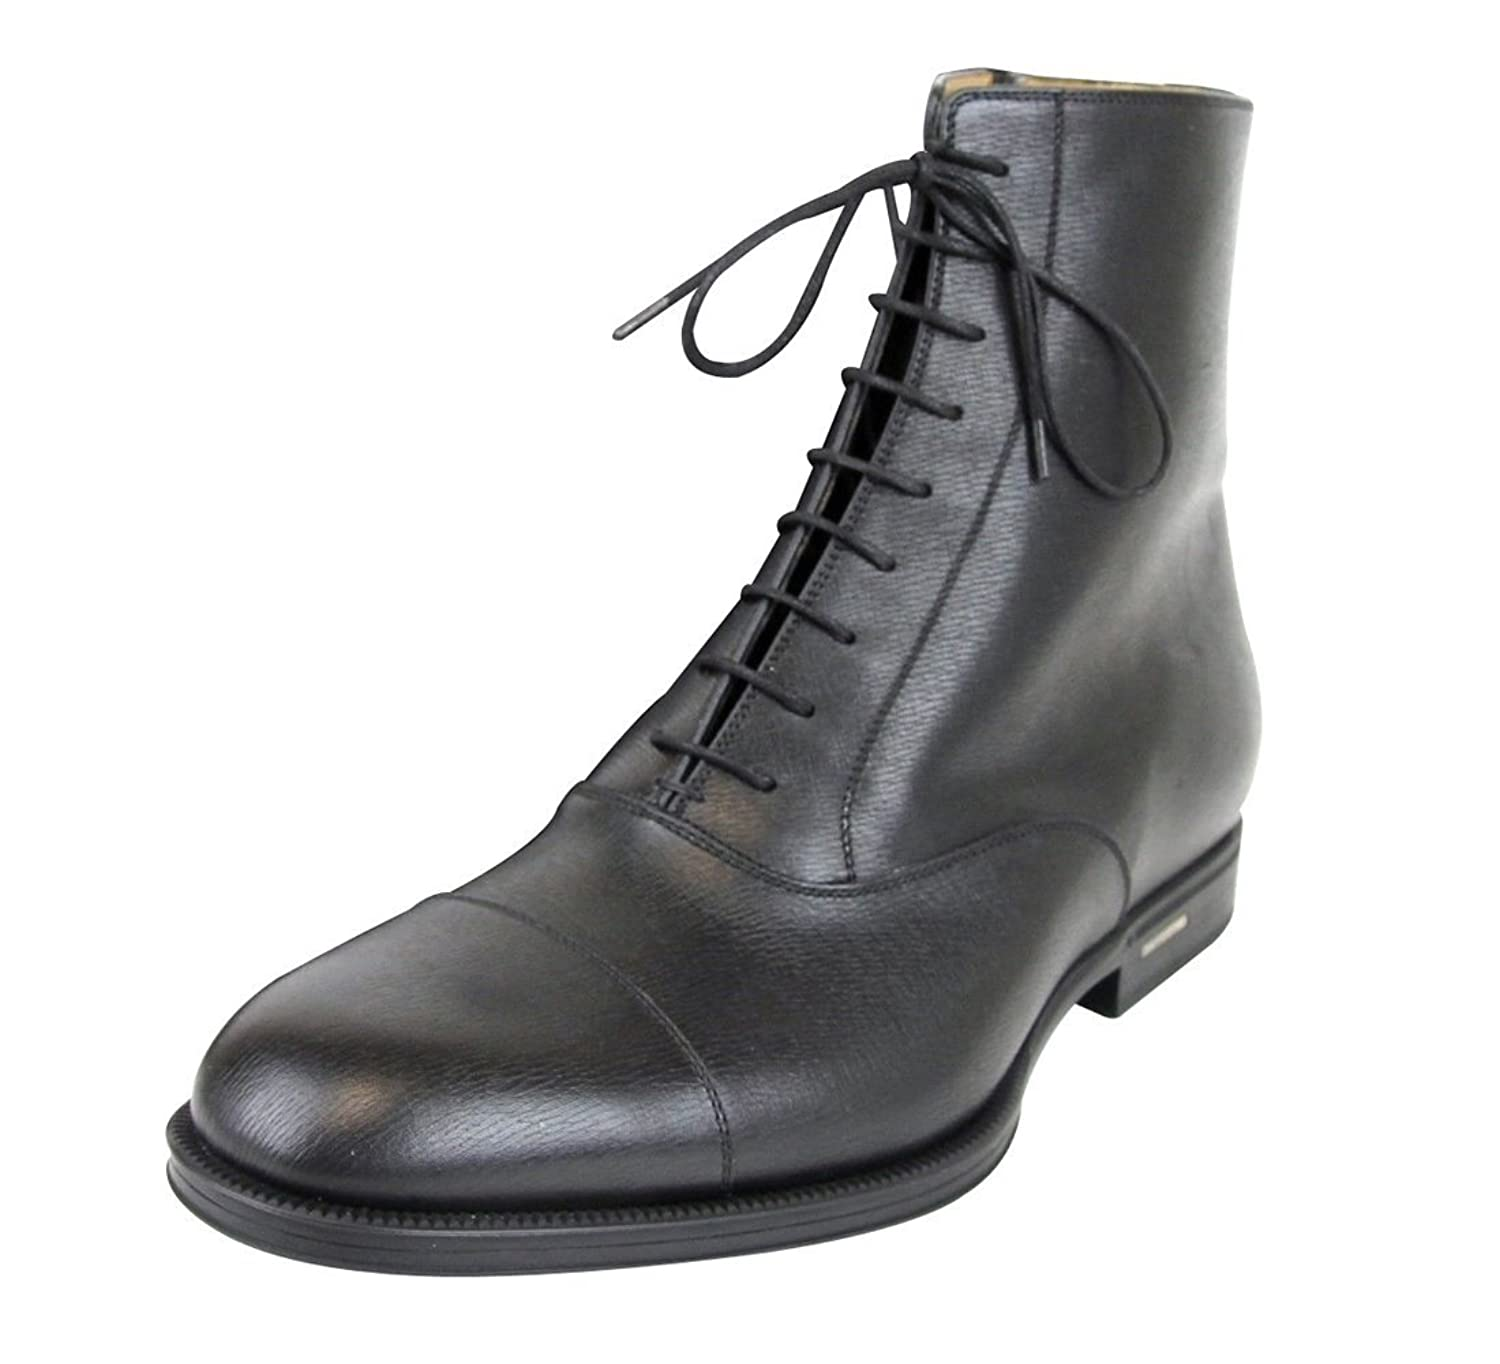 Men's Black Leather Side Zip Lace-up Ankle Boots 322481 1000